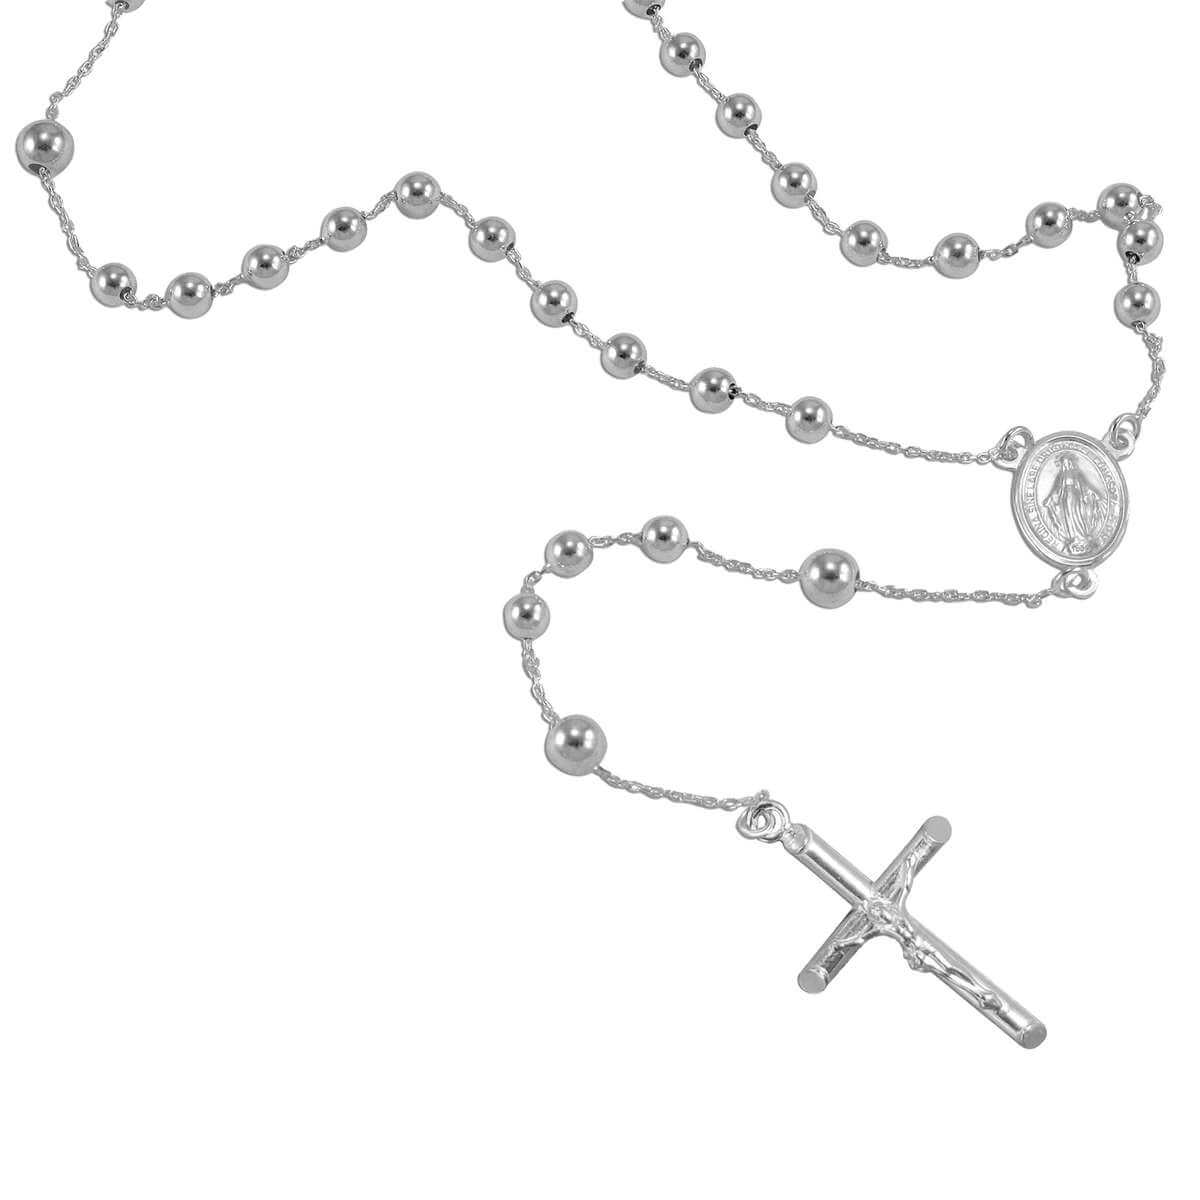 Heavy Sterling Silver Rosary Bead Necklace